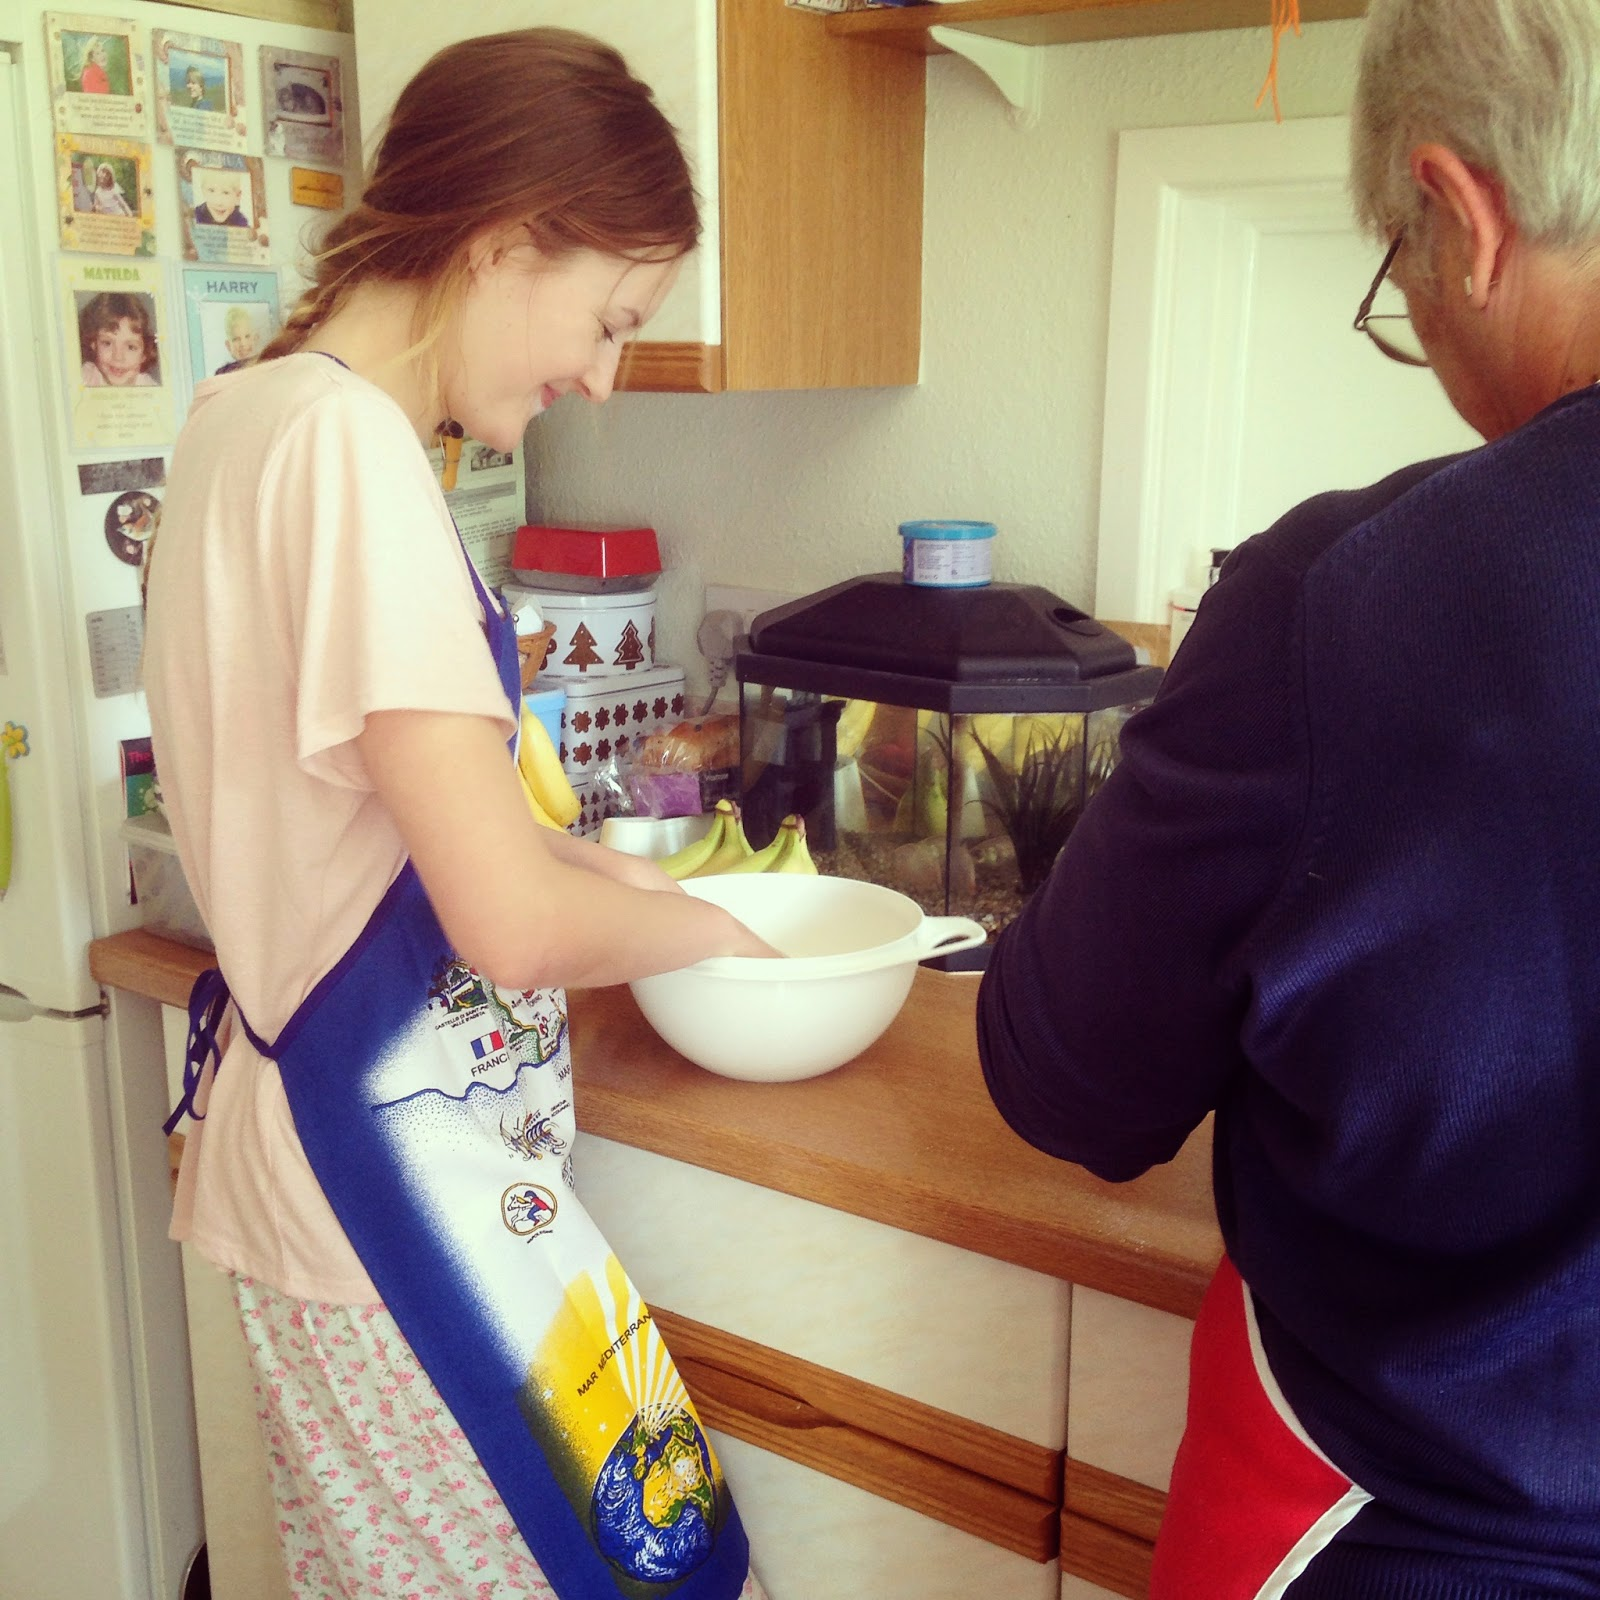 Photo Diary: The Pyjama'd Baker and The Afternoon Tea